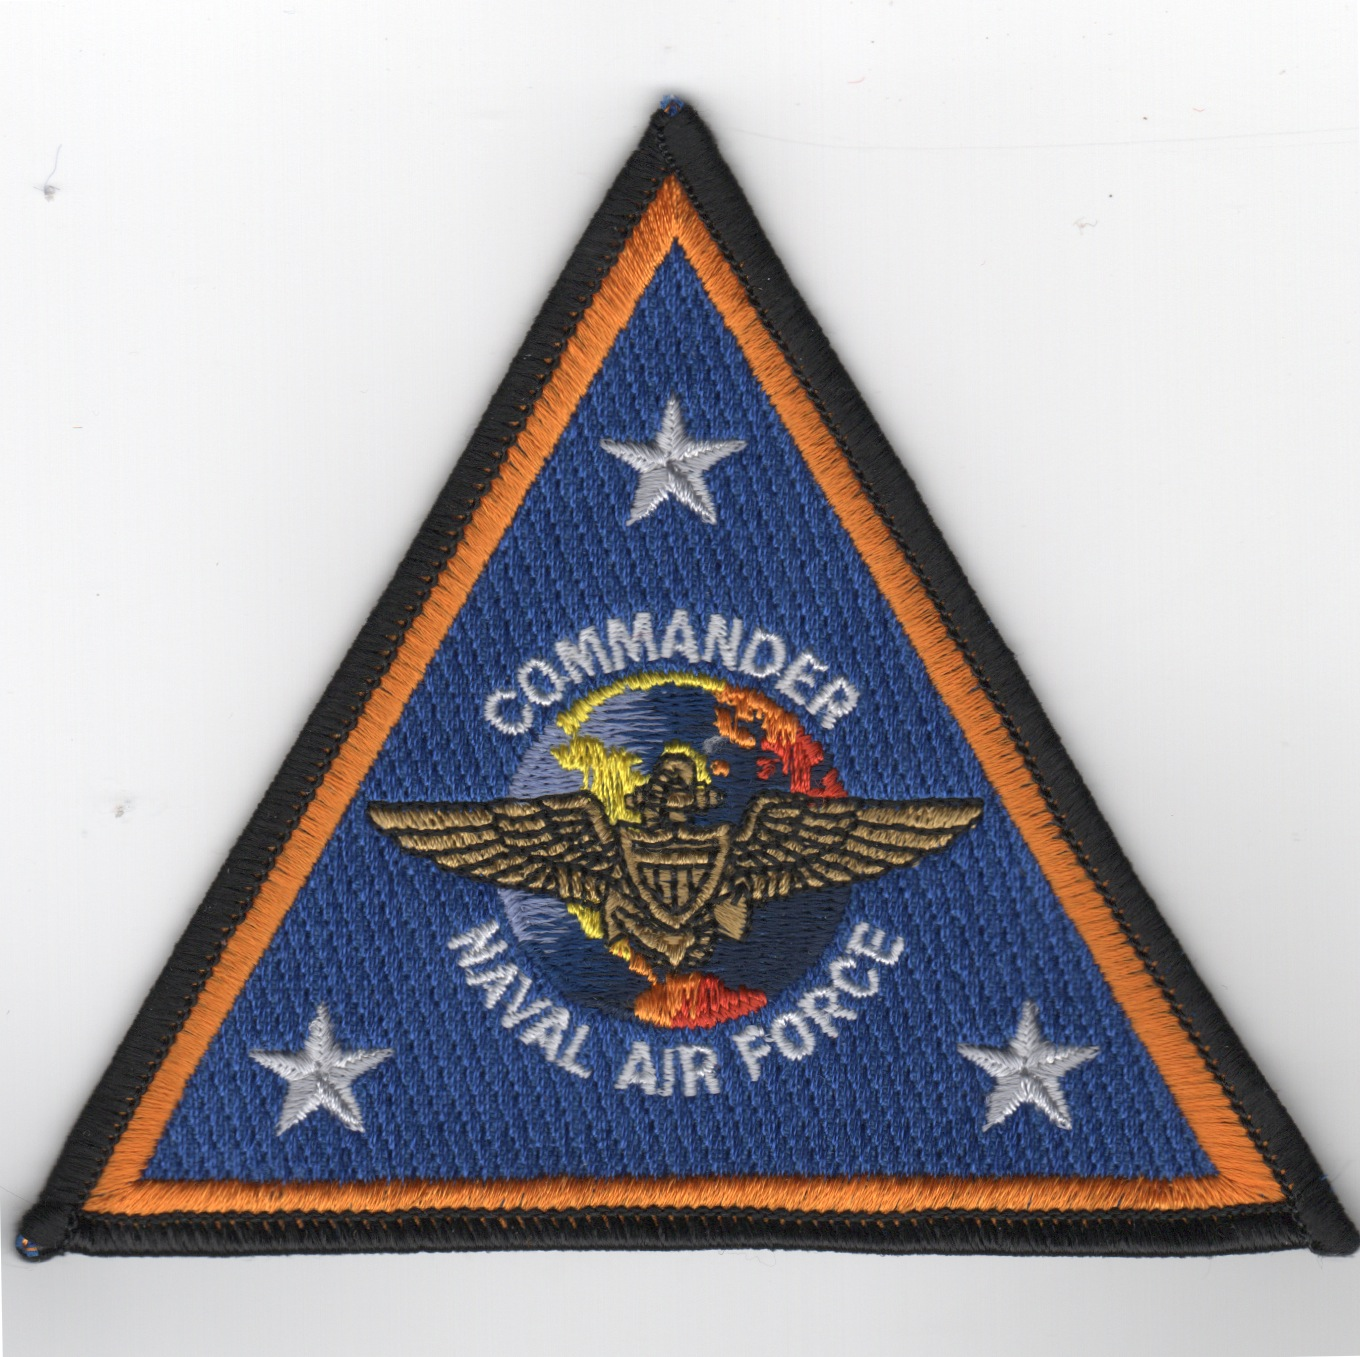 Commander, Naval Air Force (Tri)